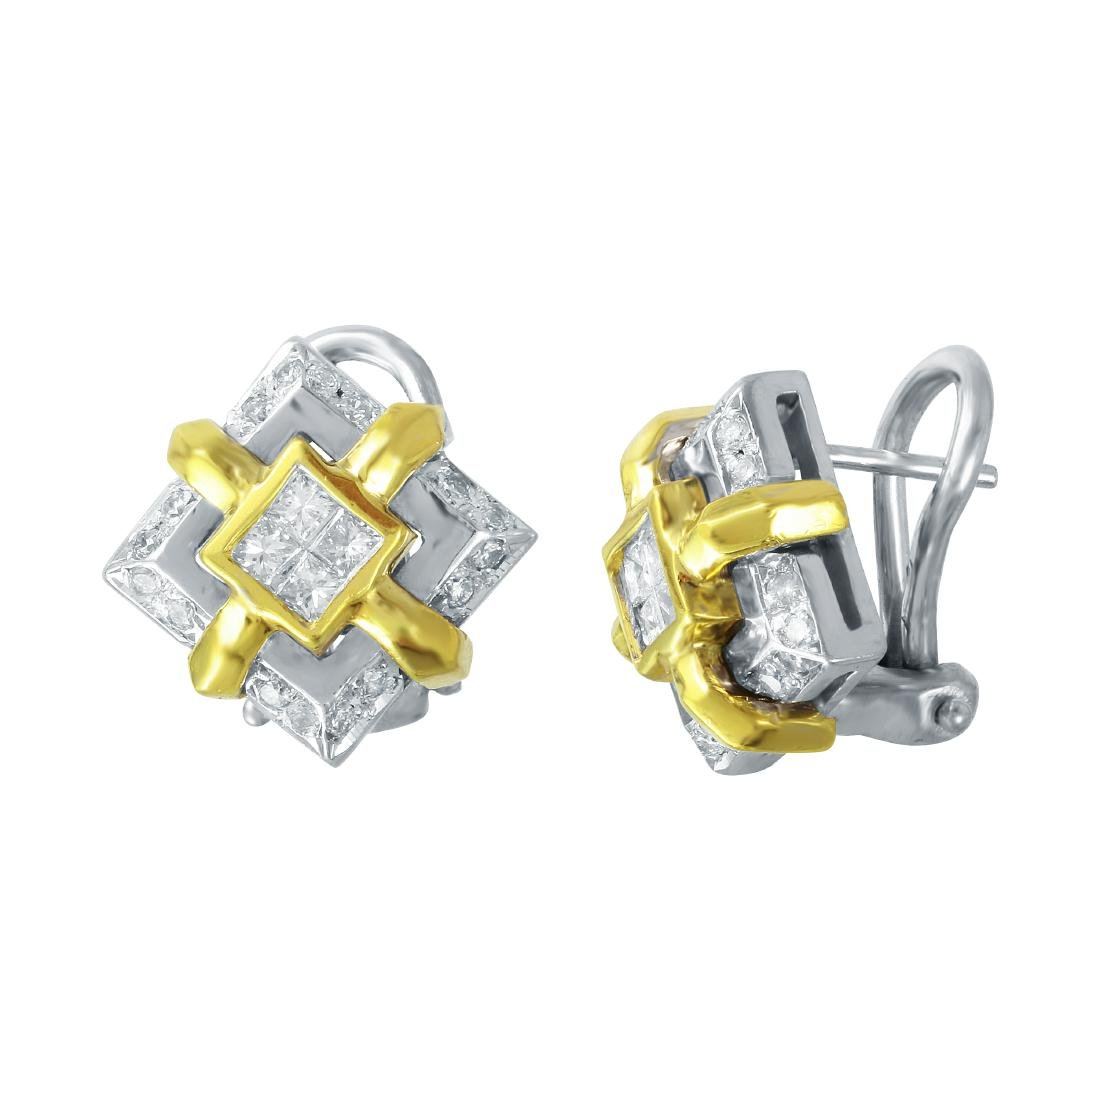 0.61 CTW 18K Two Tone Gold Ladies Earring - REF-114X8Y